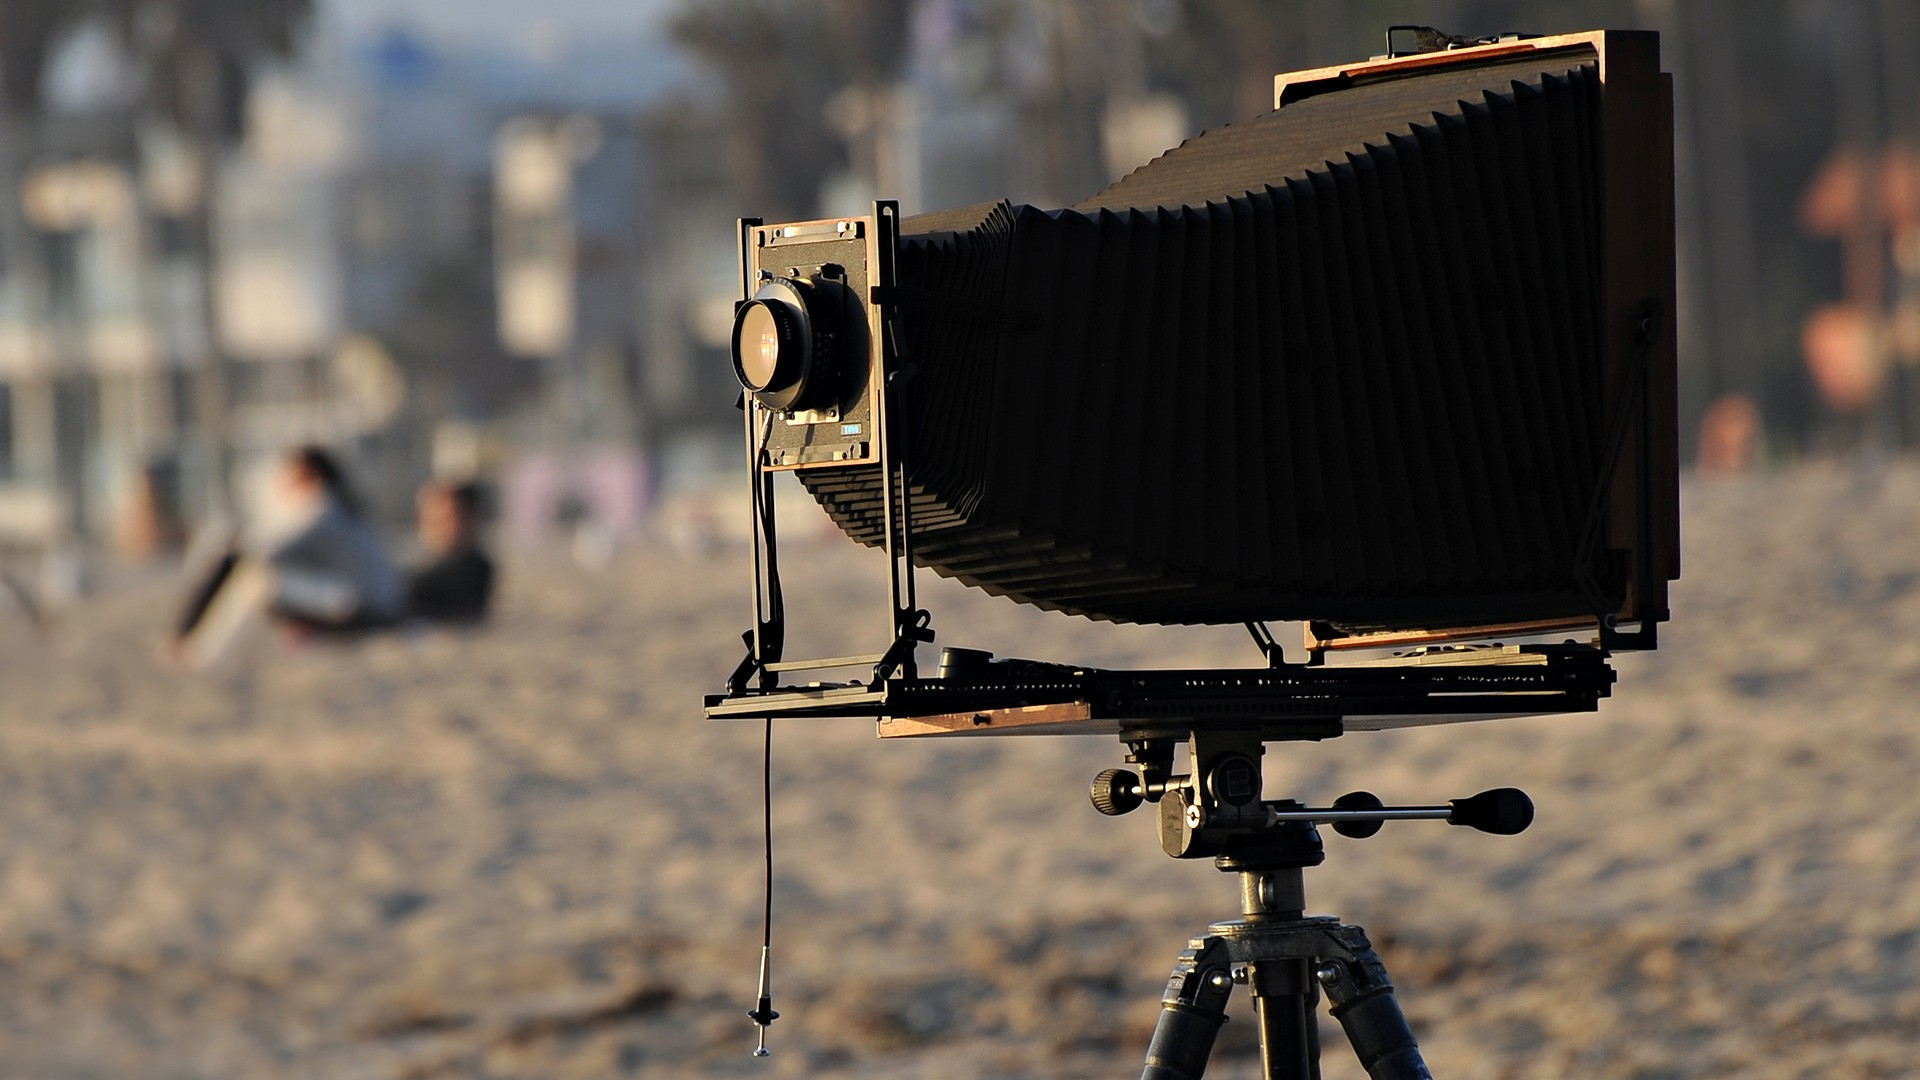 Beach vintage old cameras photo camera wallpaper | 1920x1080 ...